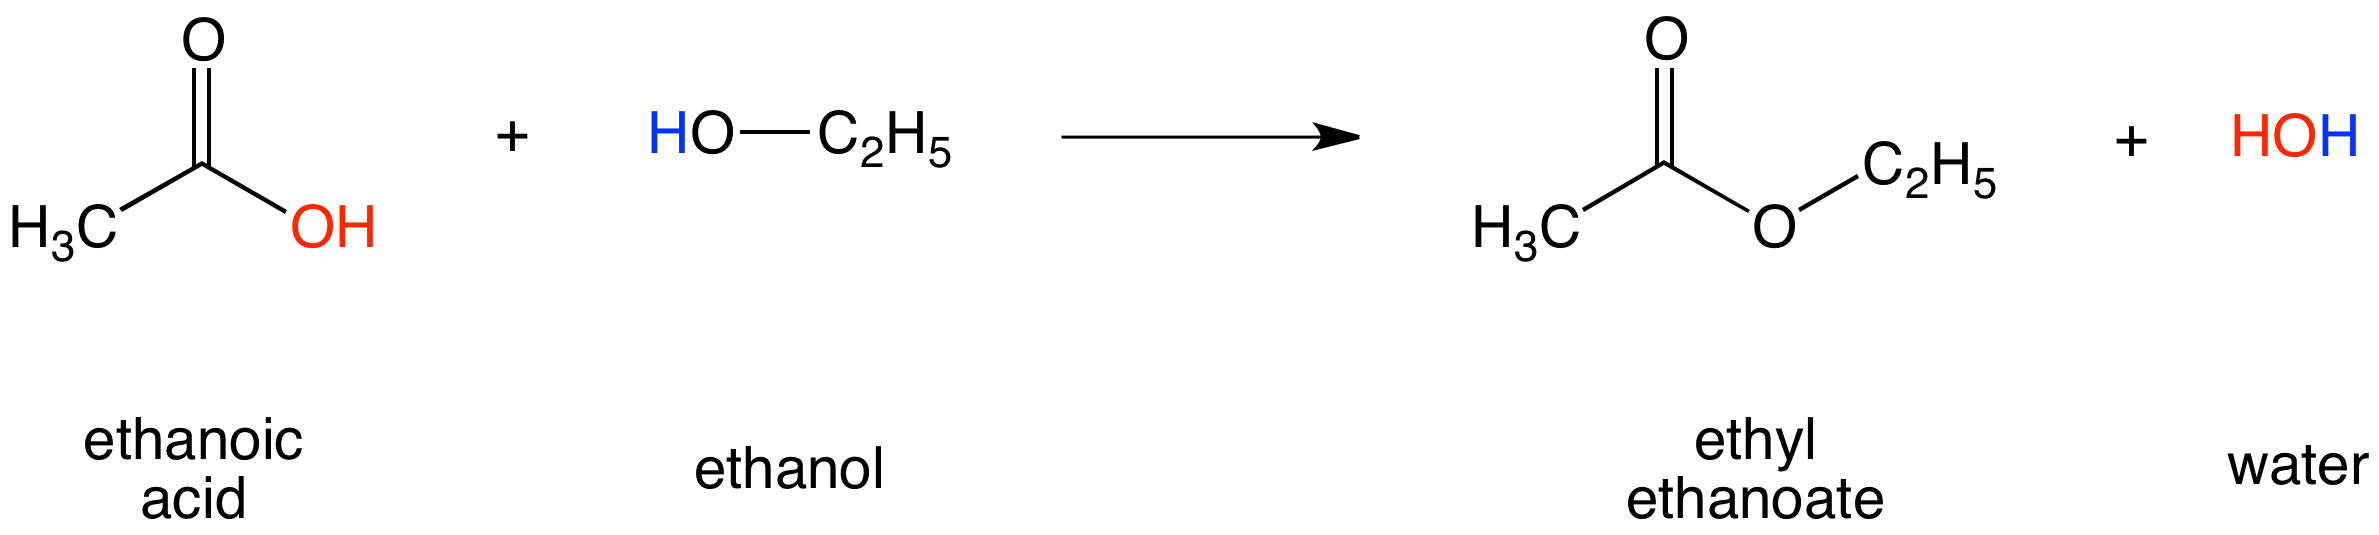 What Is Ethanol >> File:Synthesis of ethyl ethanoate.png - Wikimedia Commons